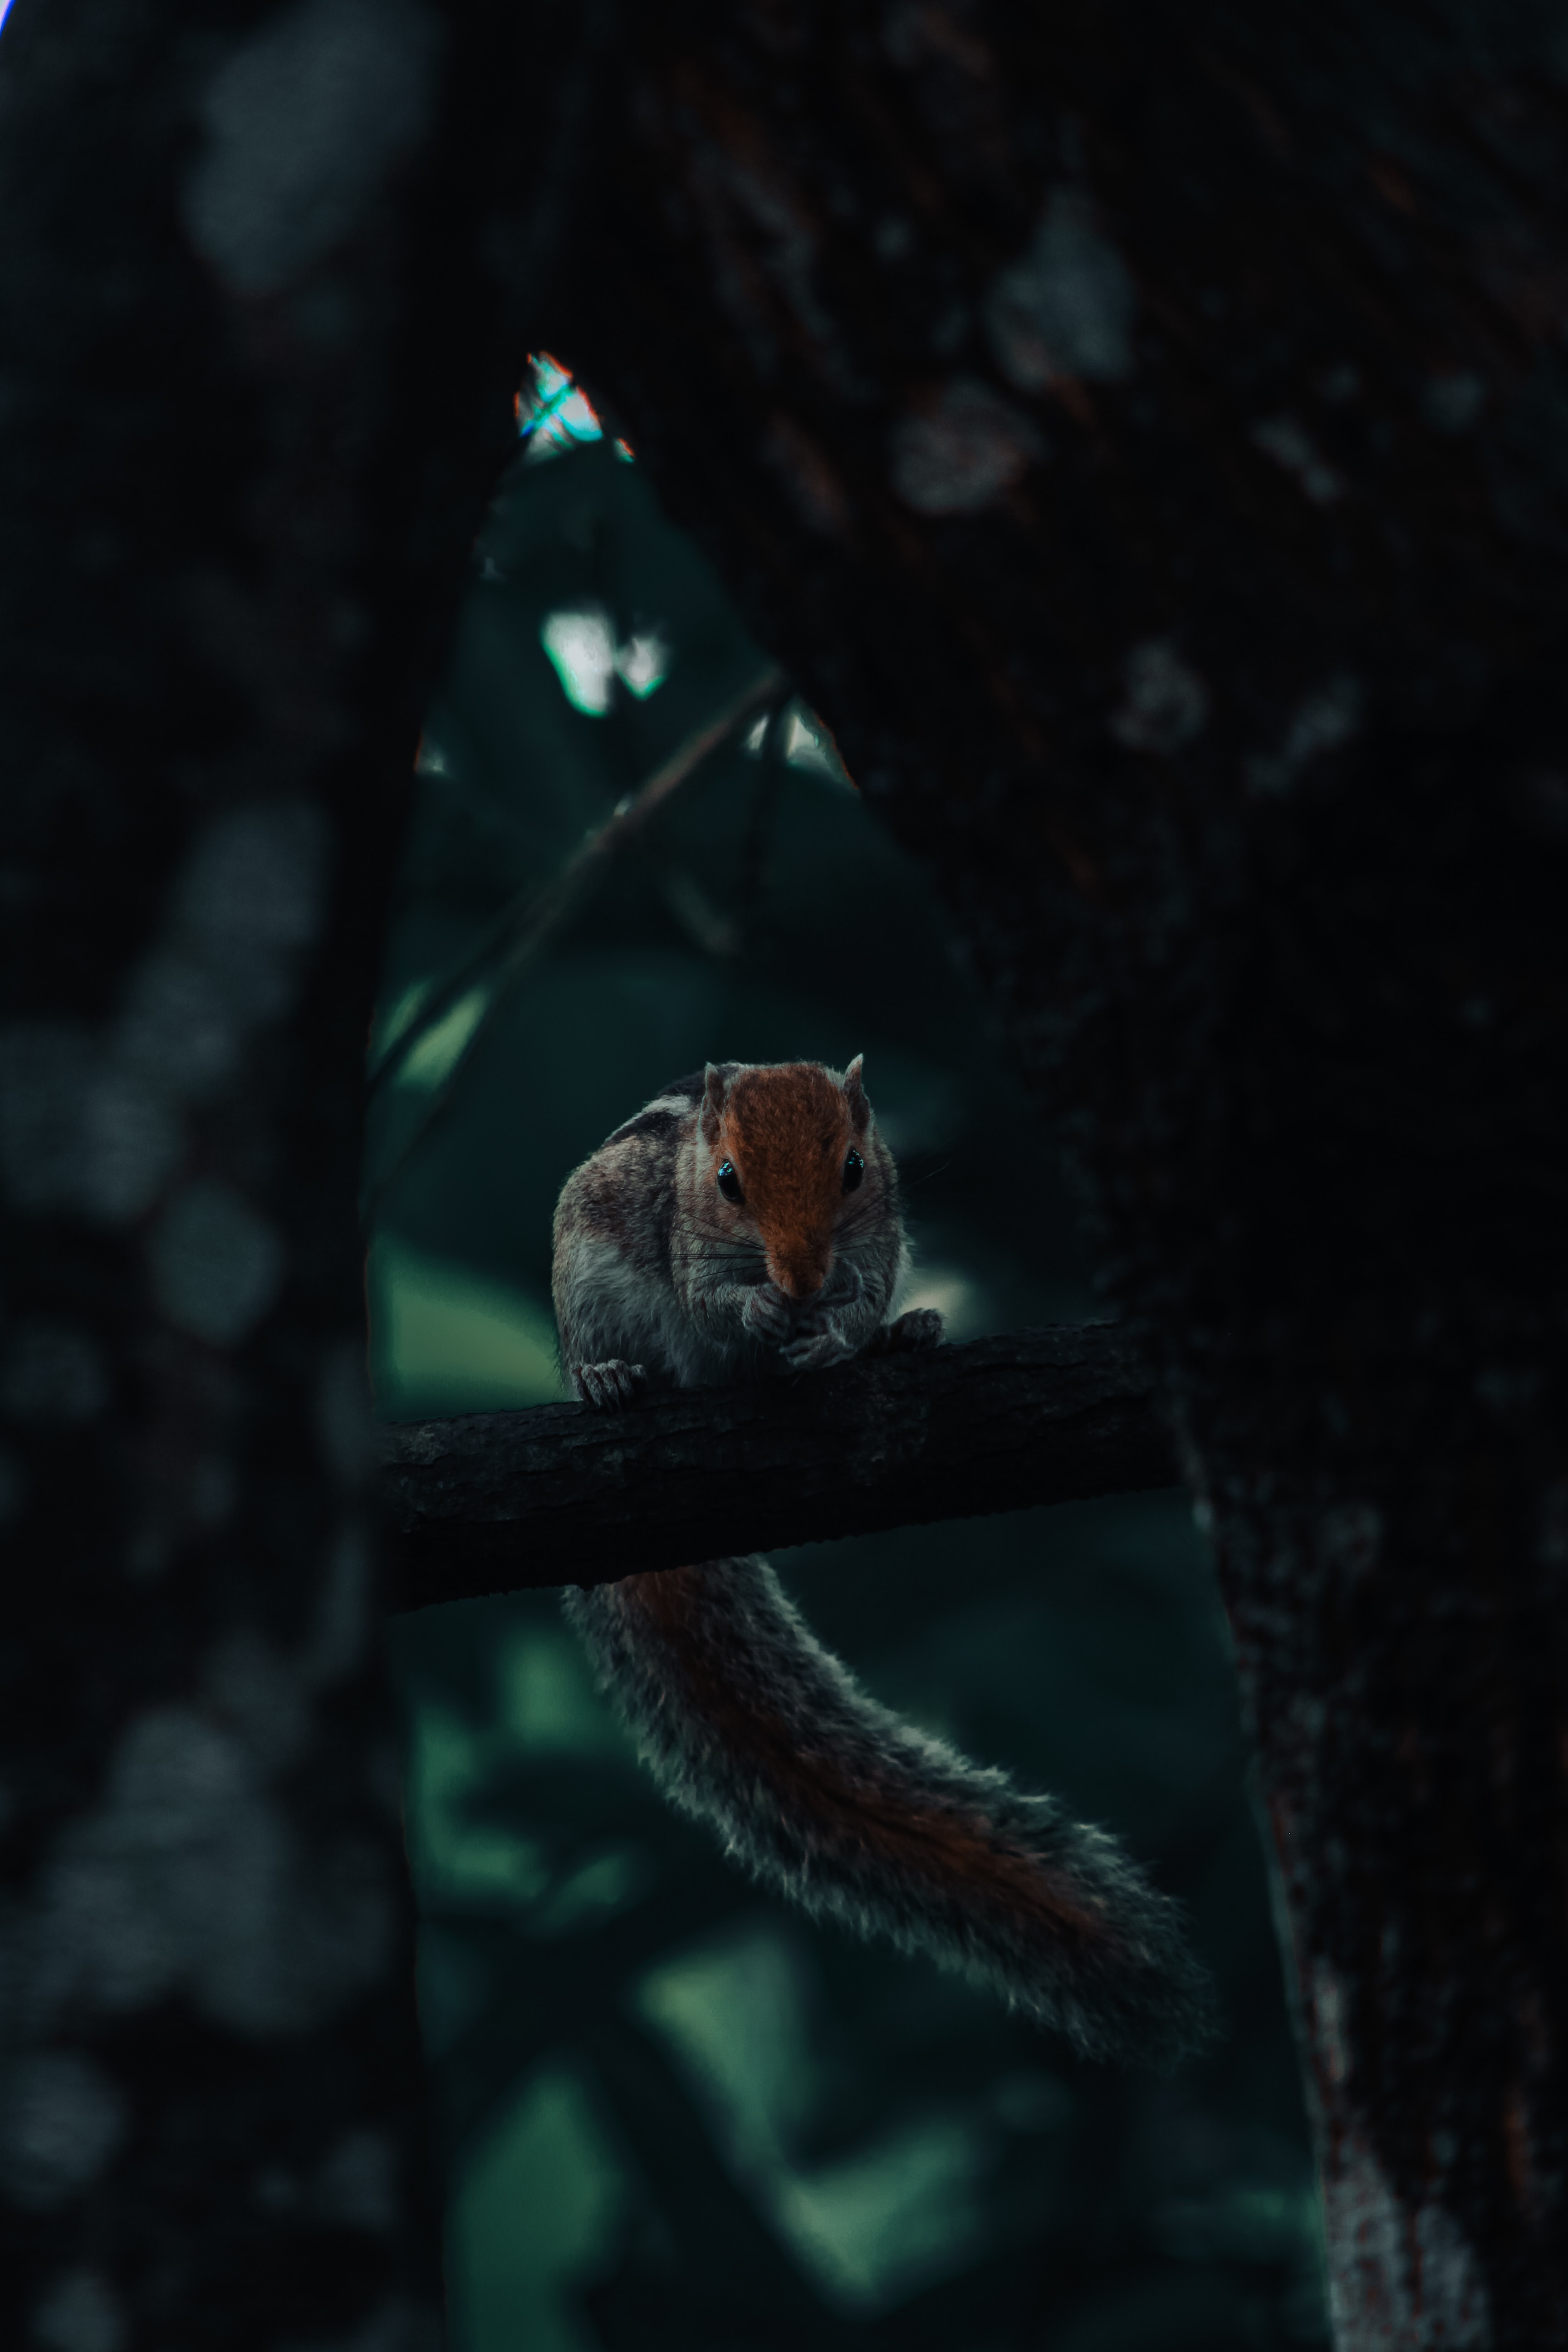 100520 download wallpaper Animals, Squirrel, Rodent, Tail, Wood, Tree screensavers and pictures for free